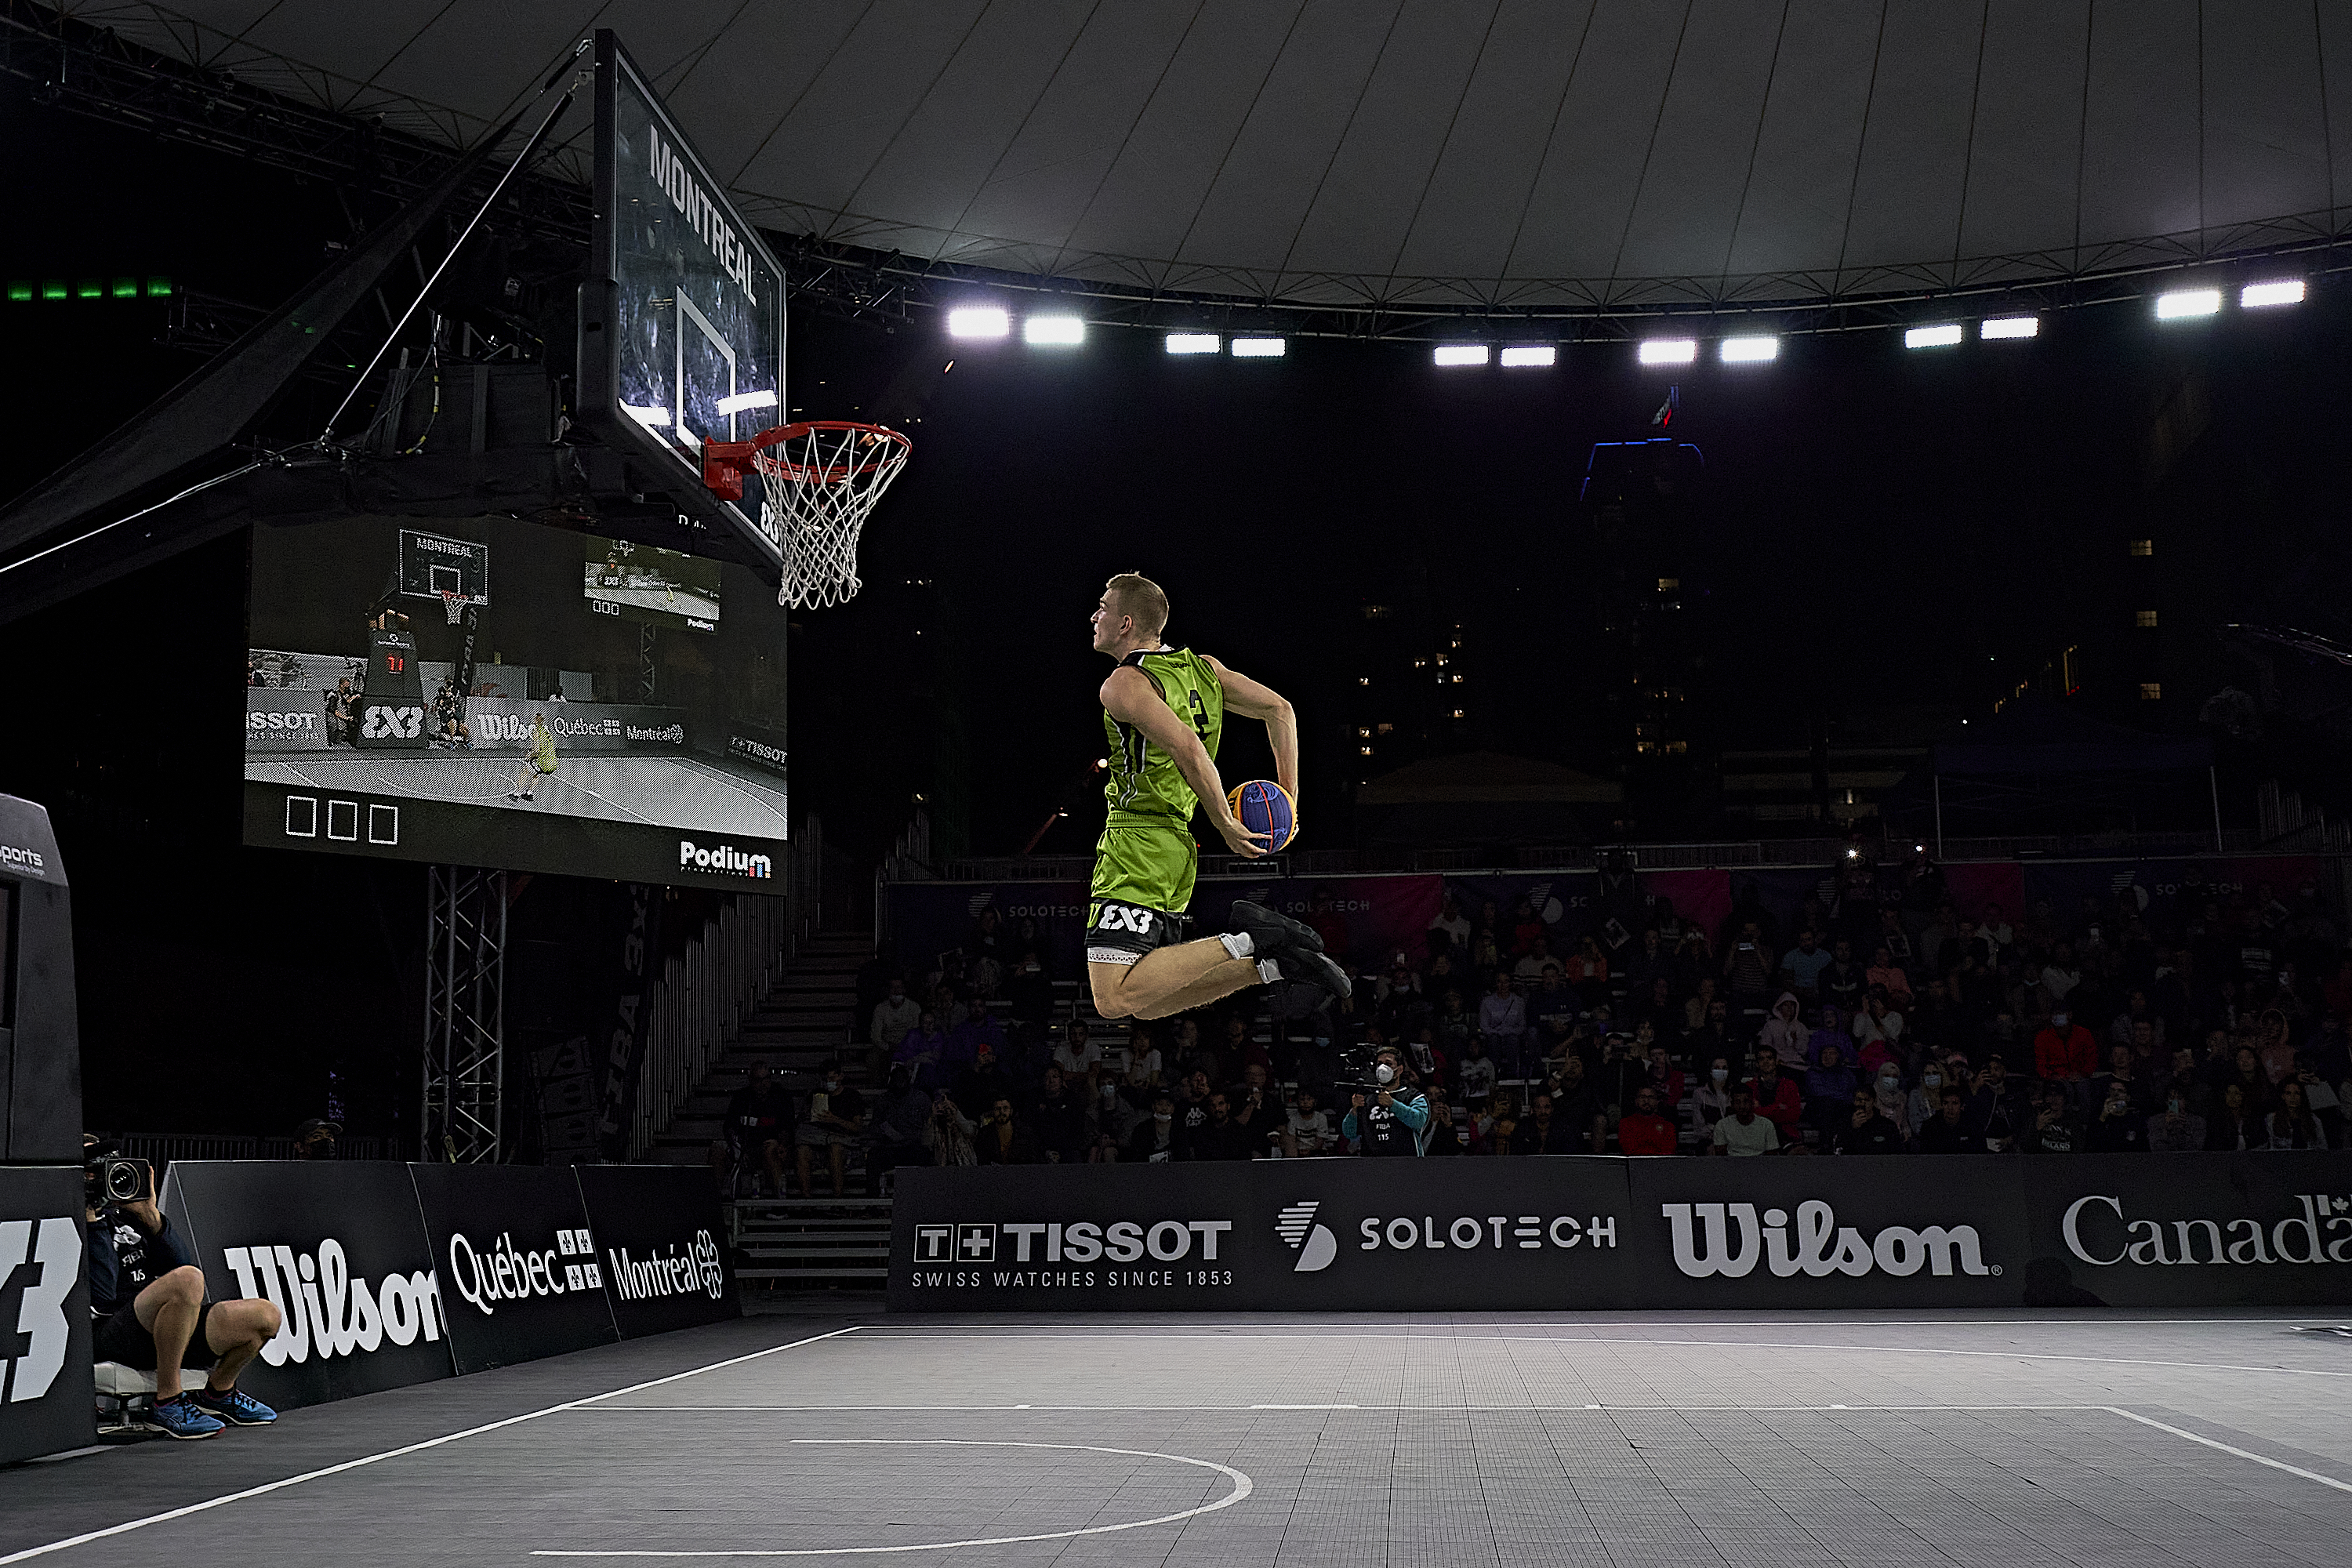 Dunk Montreal 2021